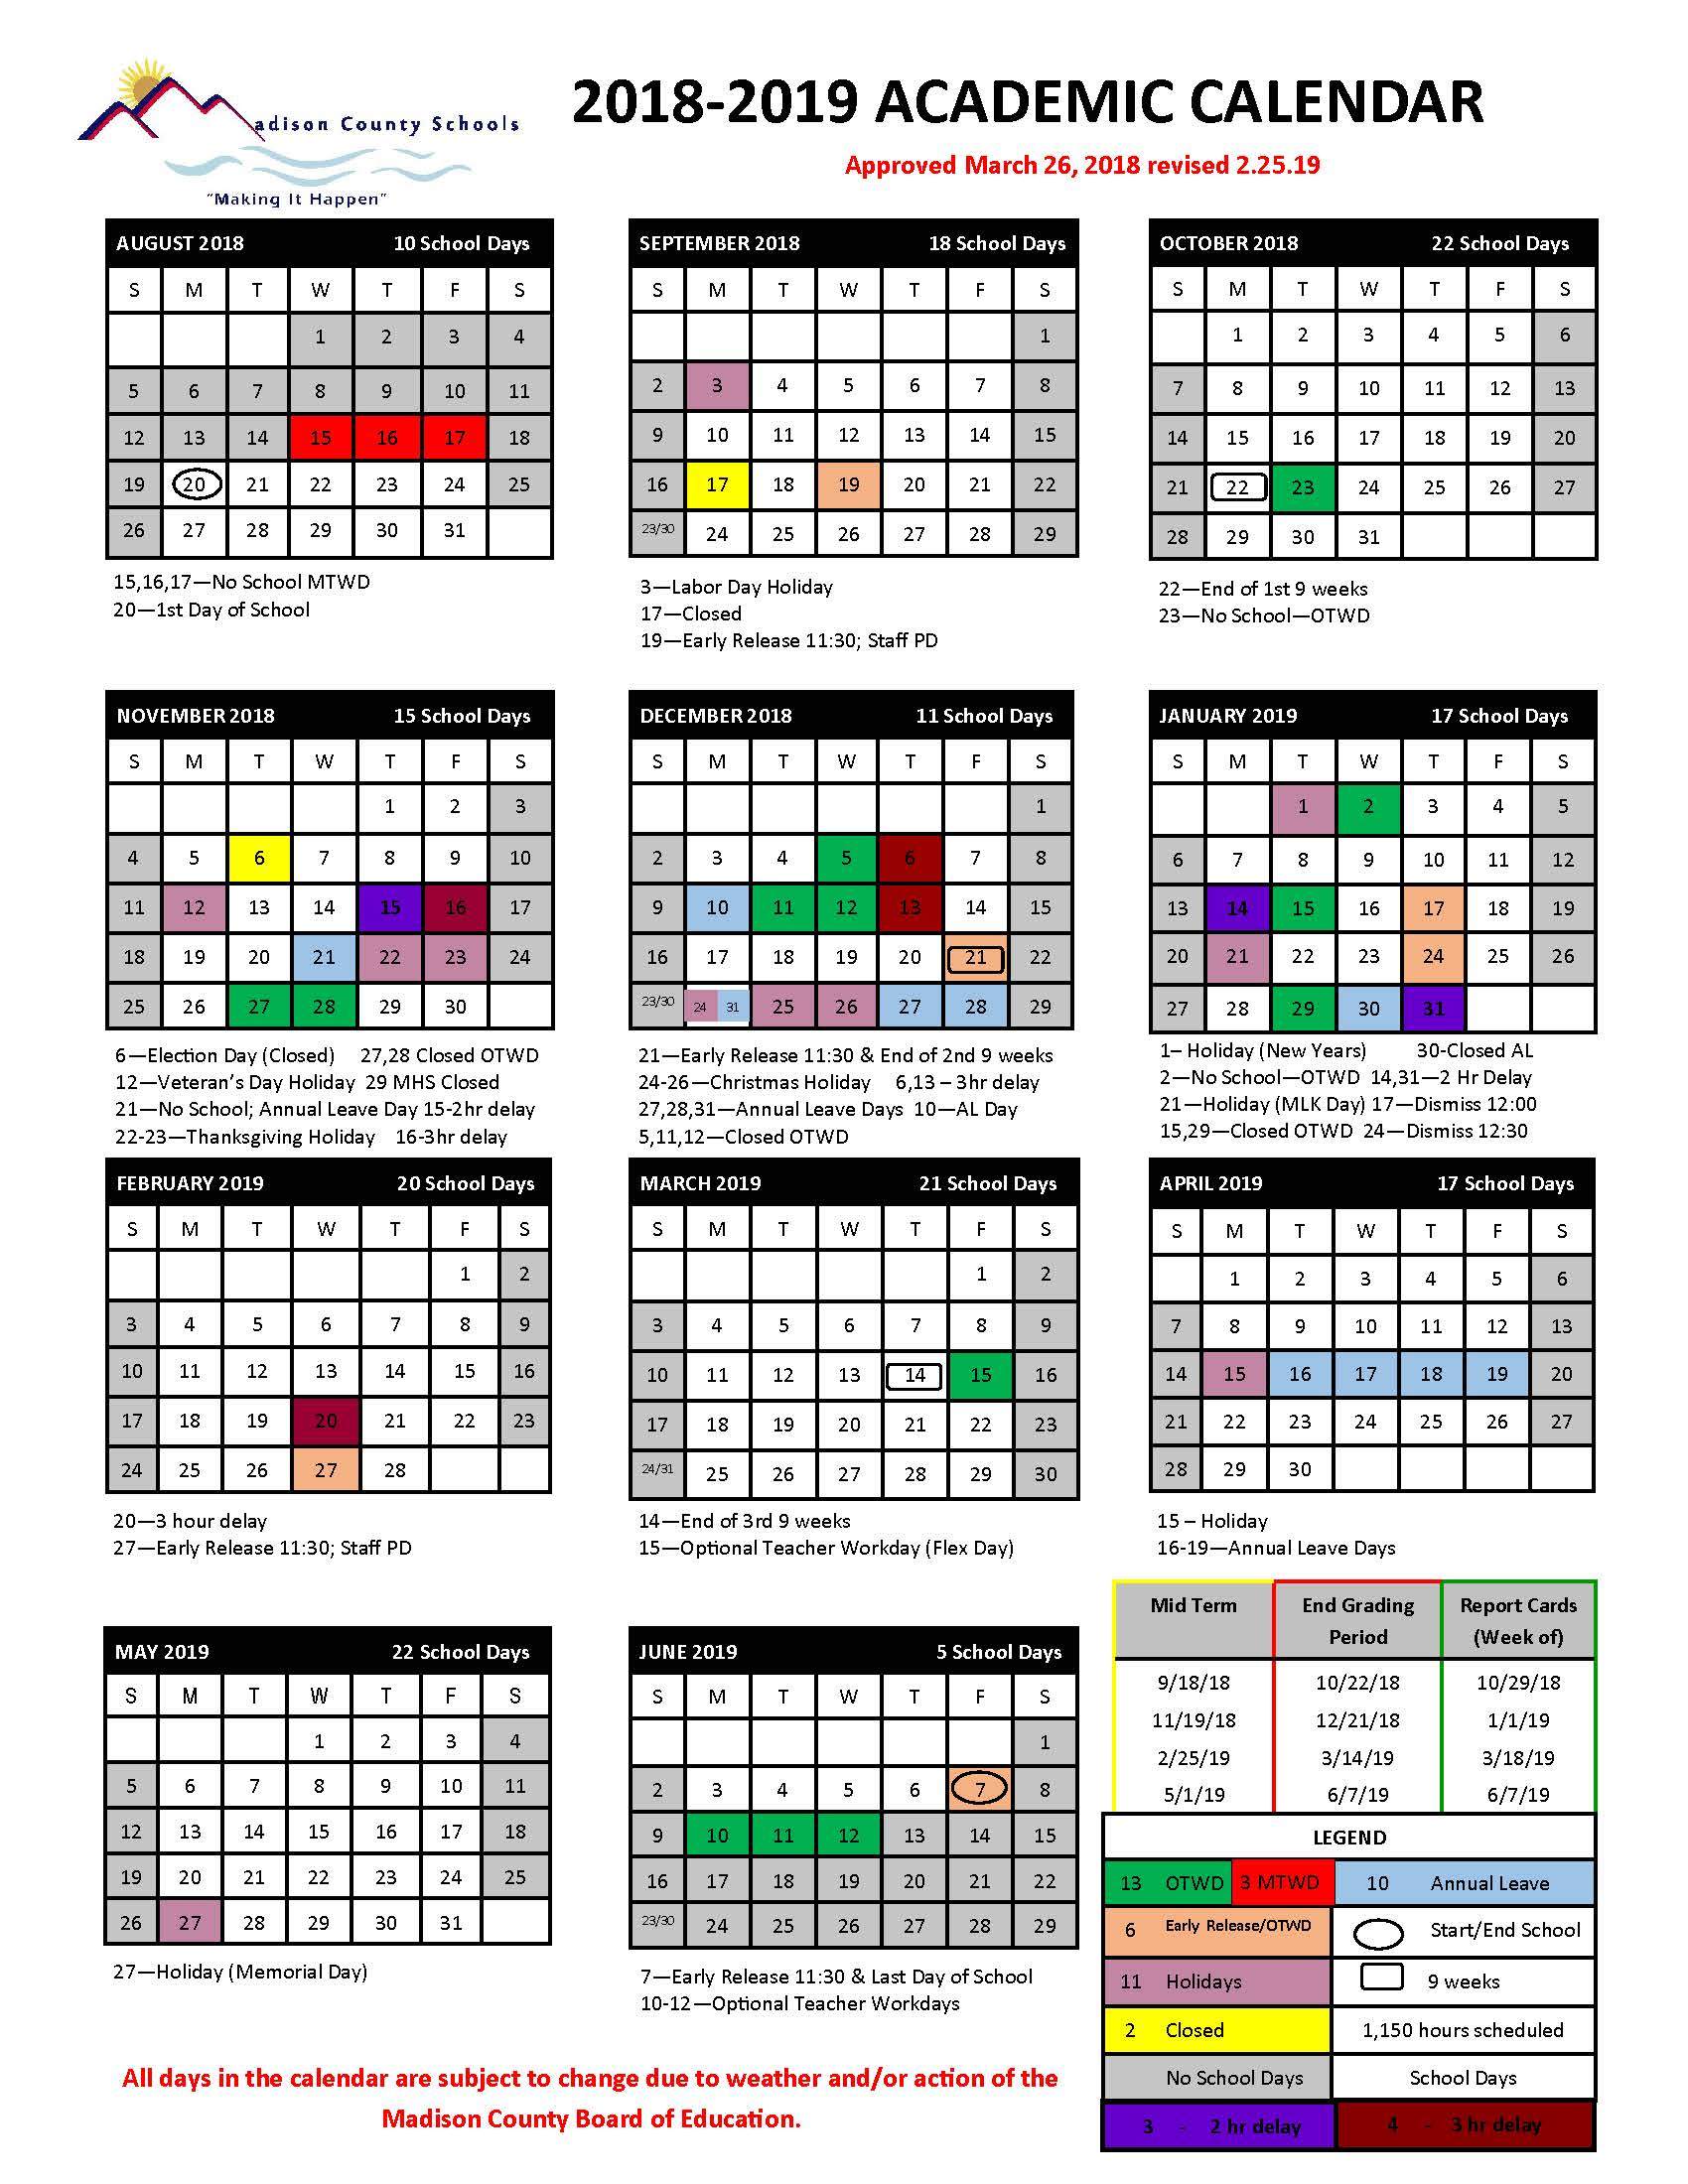 the madison county school board of education and our calendar committee have approved a change to our current calendar the end of our 9 weeks grading